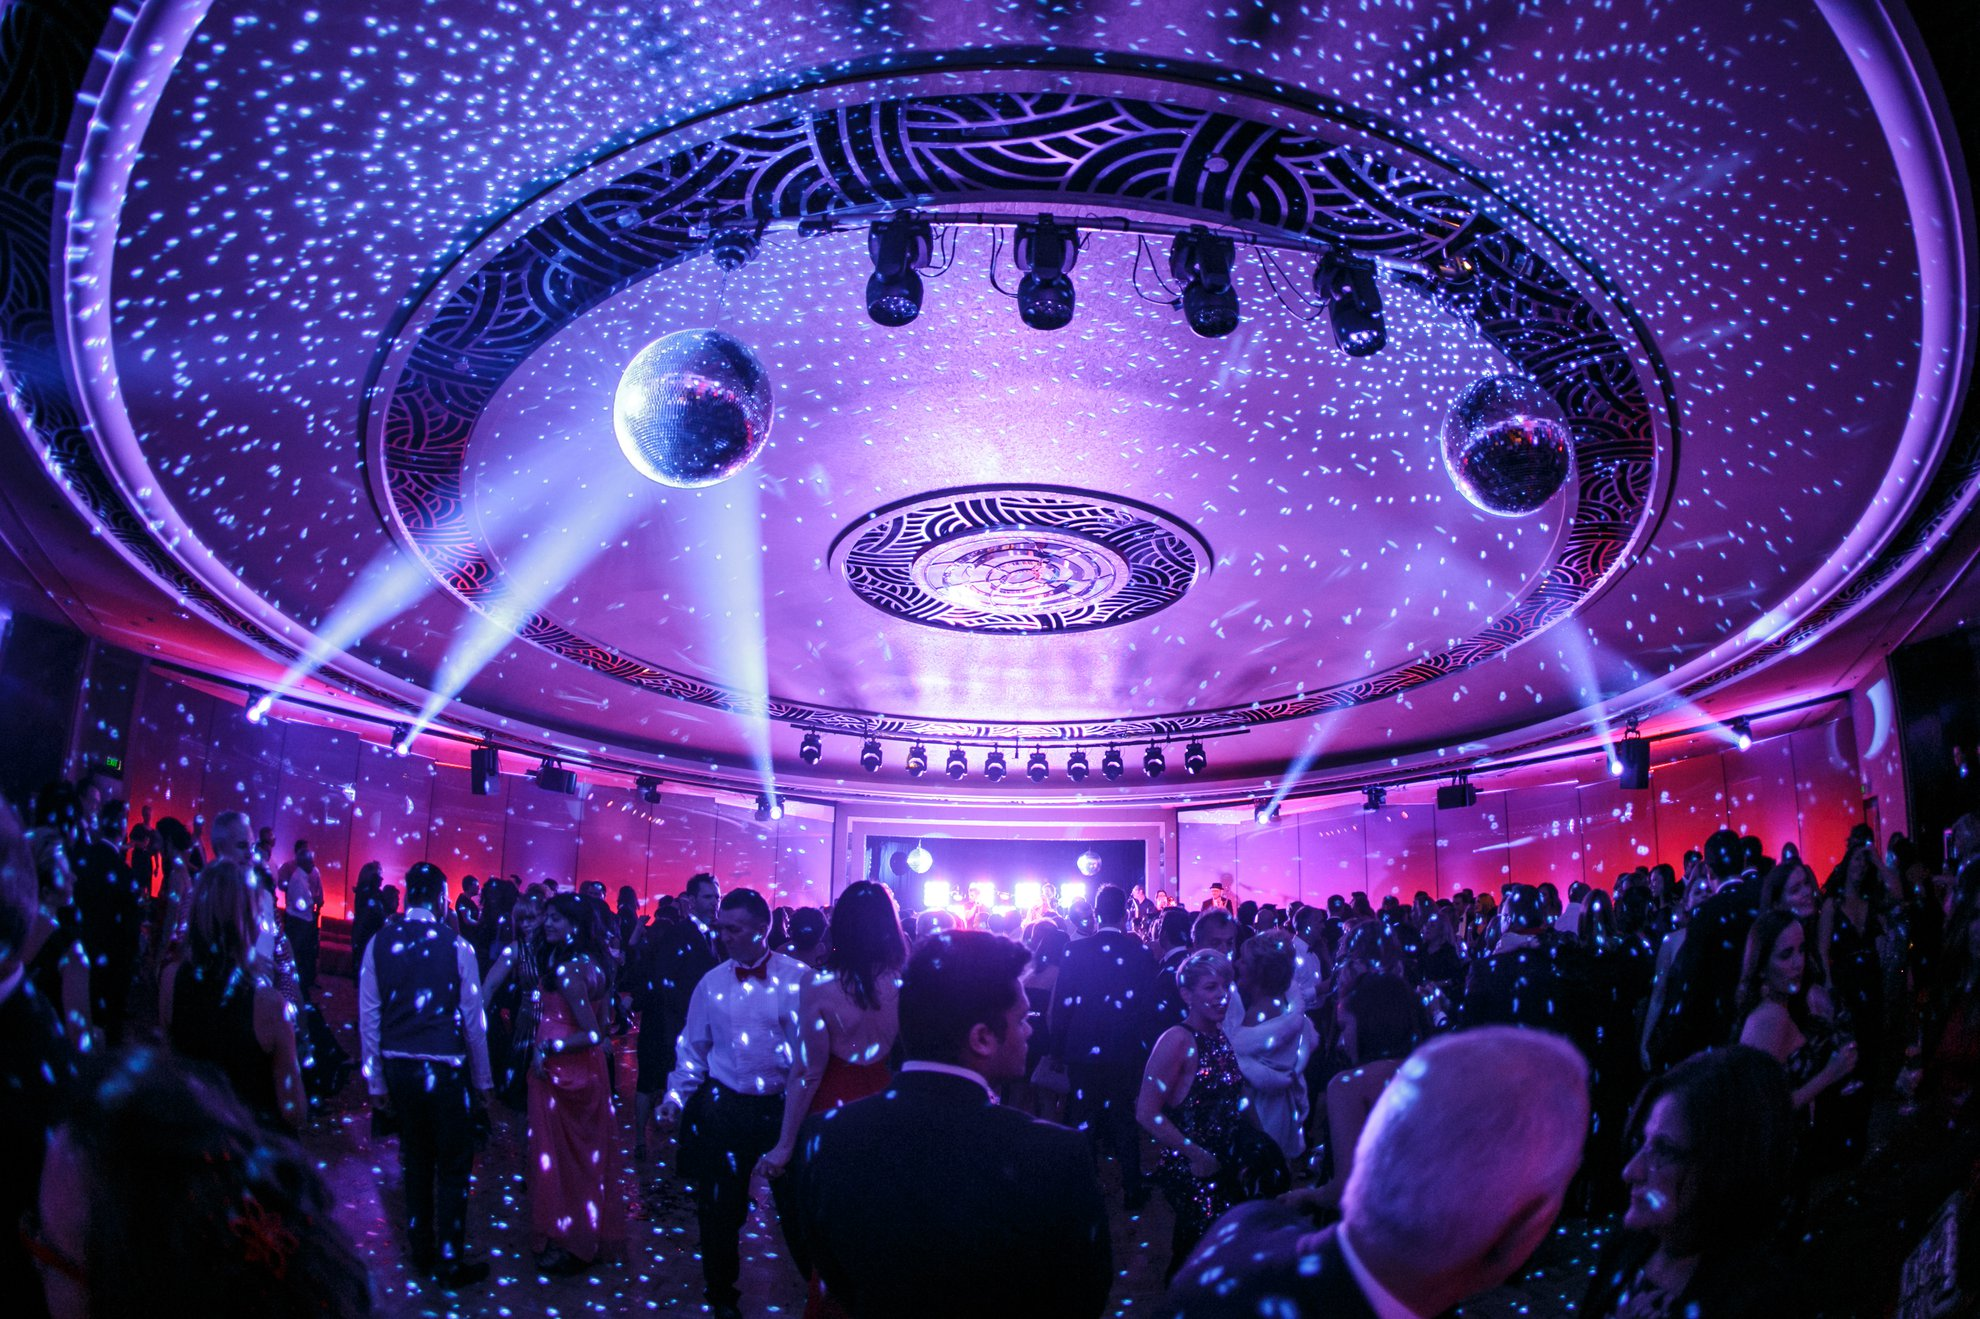 Grand event in Mayfair Ballroom